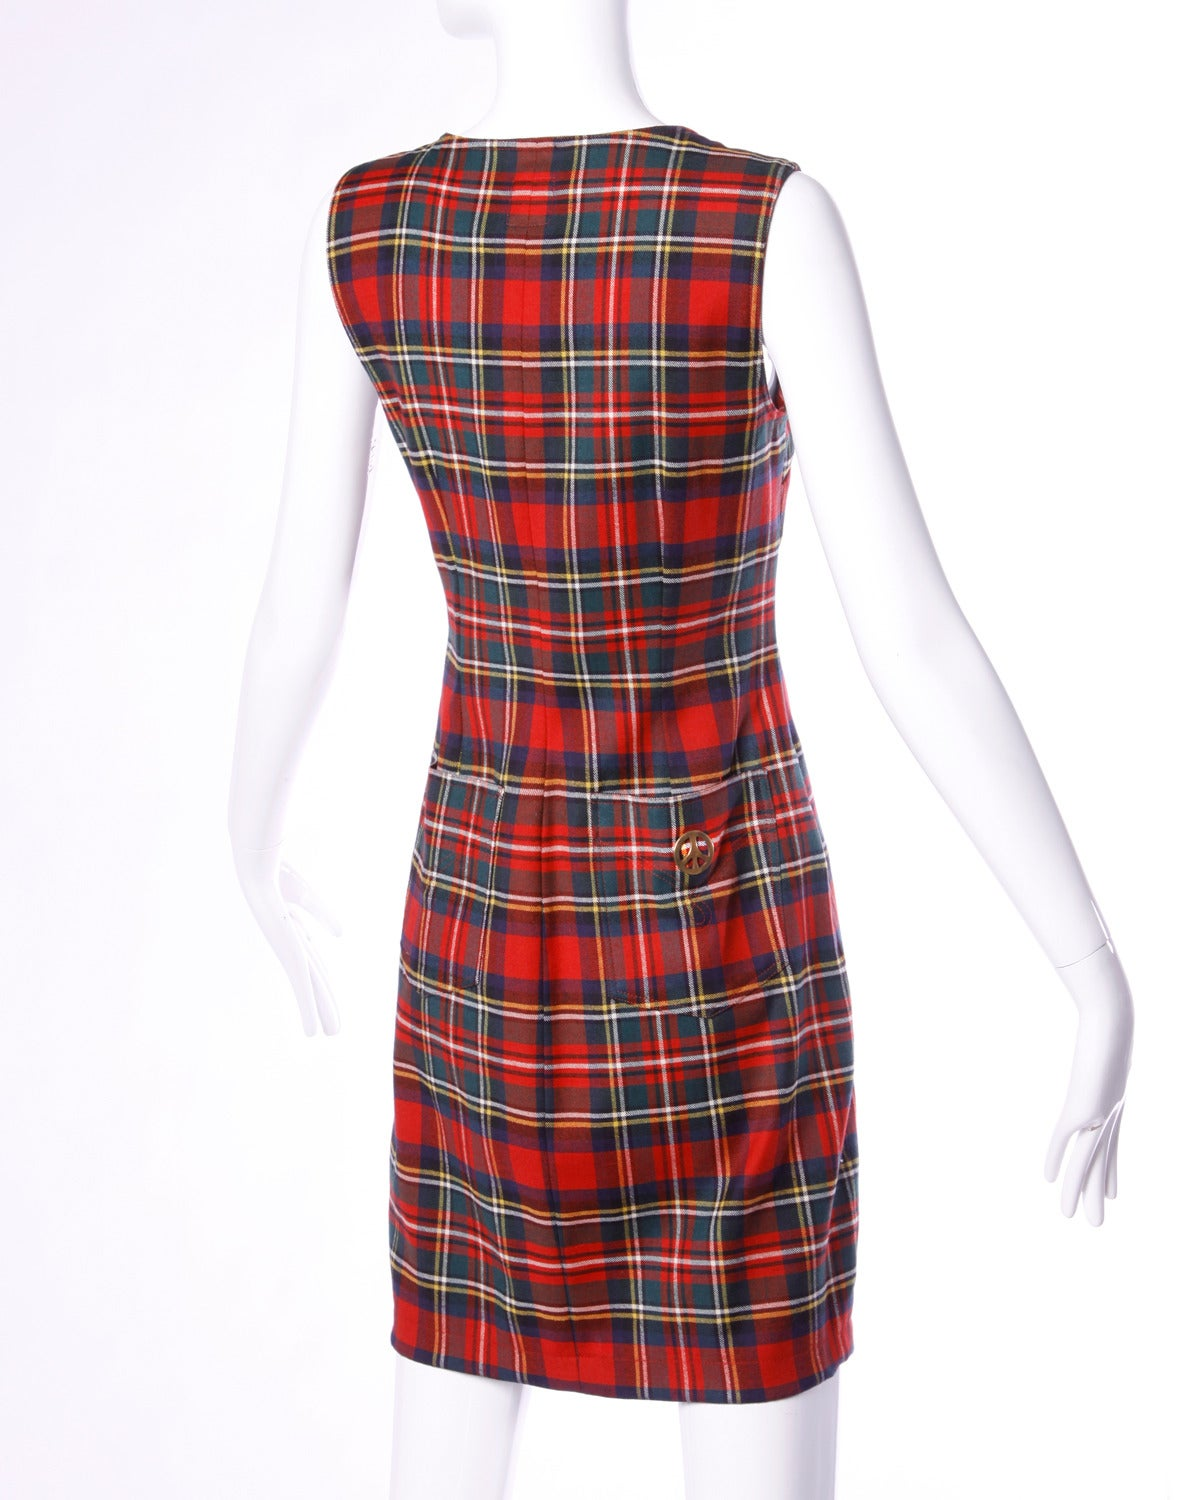 Unworn Moschino Vintage 1990s 90s Red Tartan Plaid Mini Sheath Dress 2